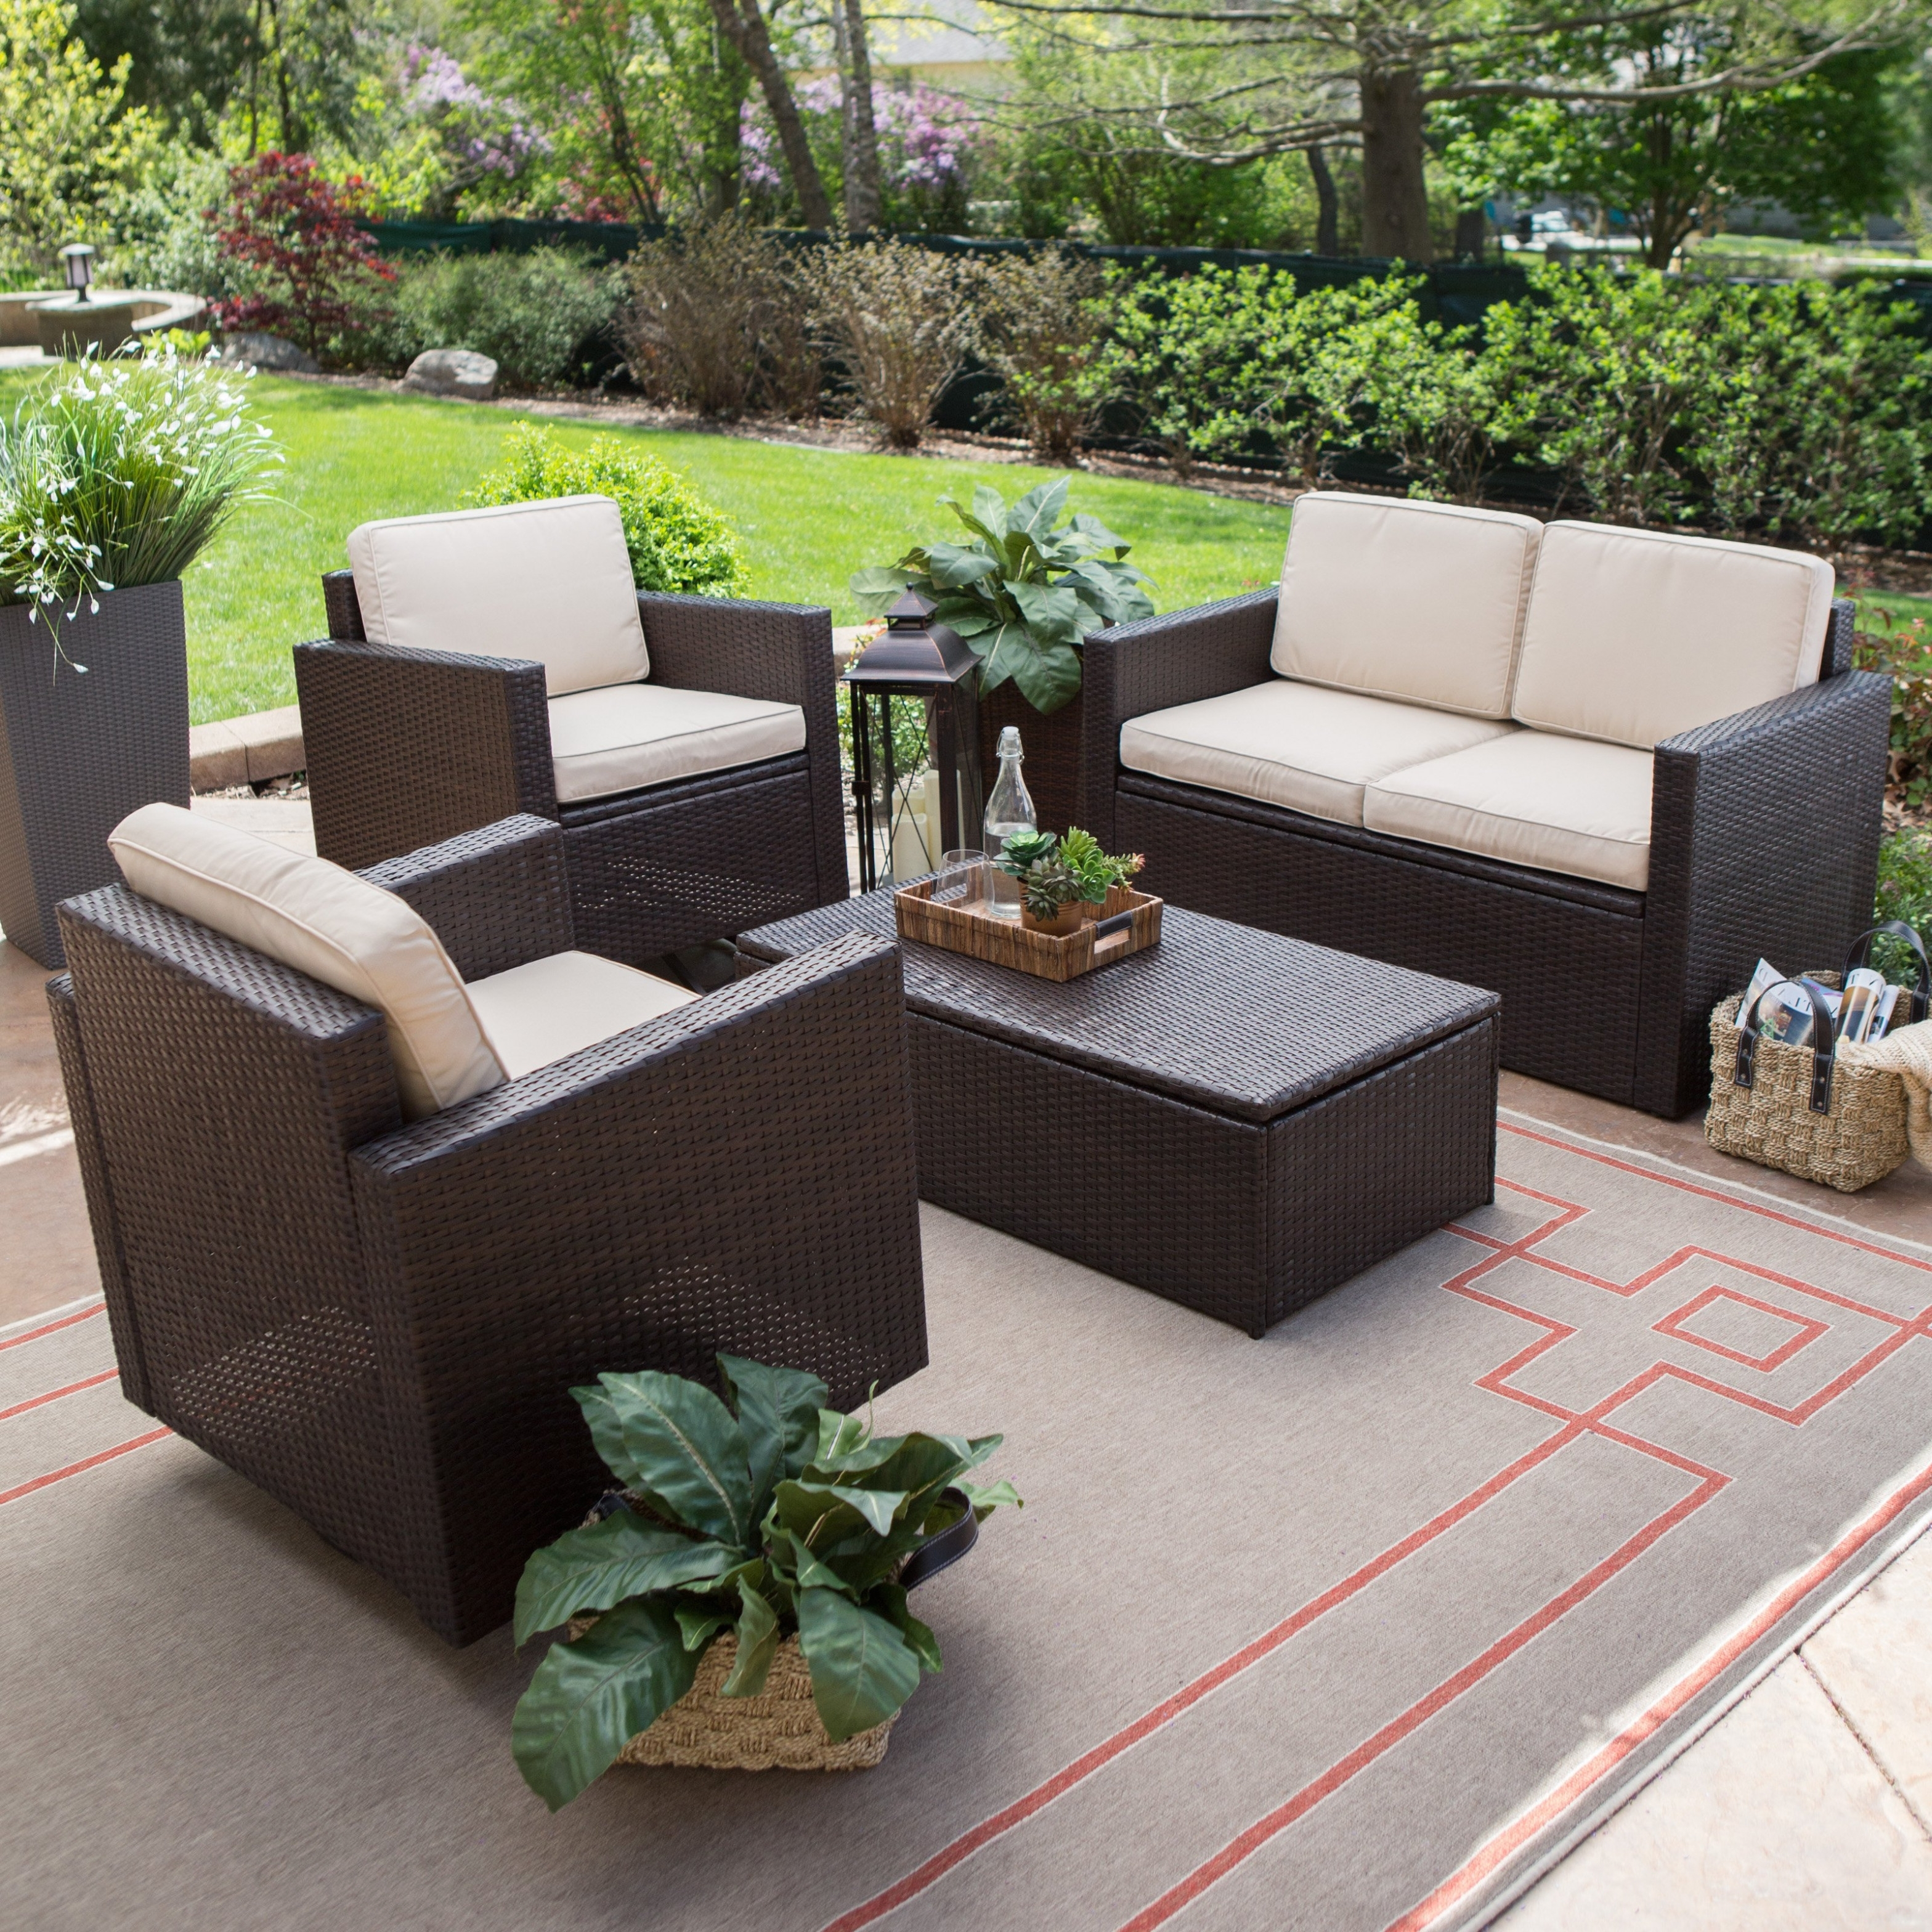 30 Luxury Small Sectional Patio Furniture Concept Intended For 2018 Small Patio Conversation Sets (View 2 of 20)